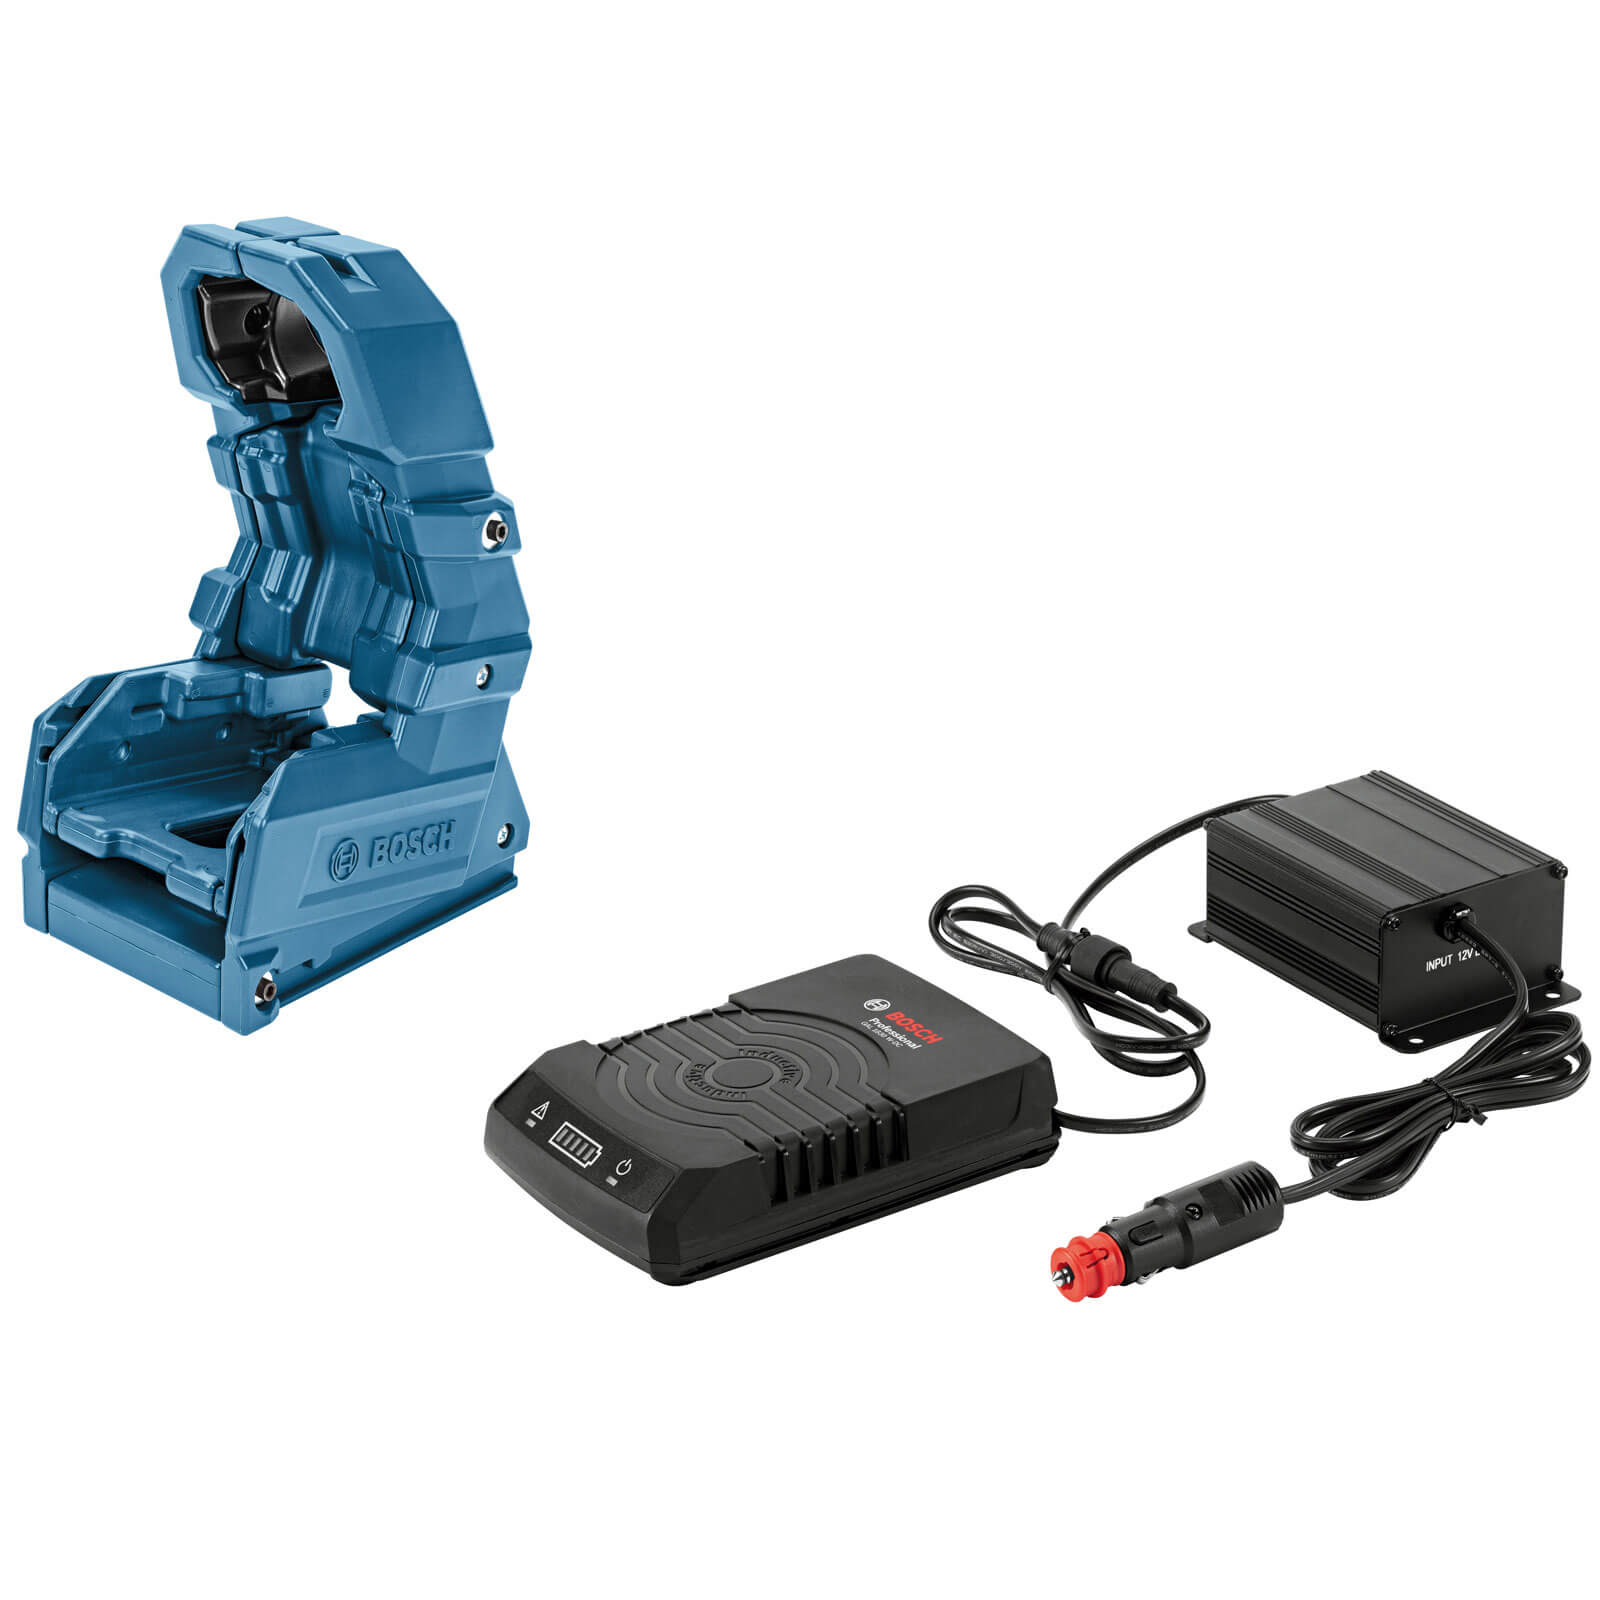 Image of Bosch GAL 1830 W-DC Wireless 18v Cordless Li-ion Battery Charger and Holster Set 12v